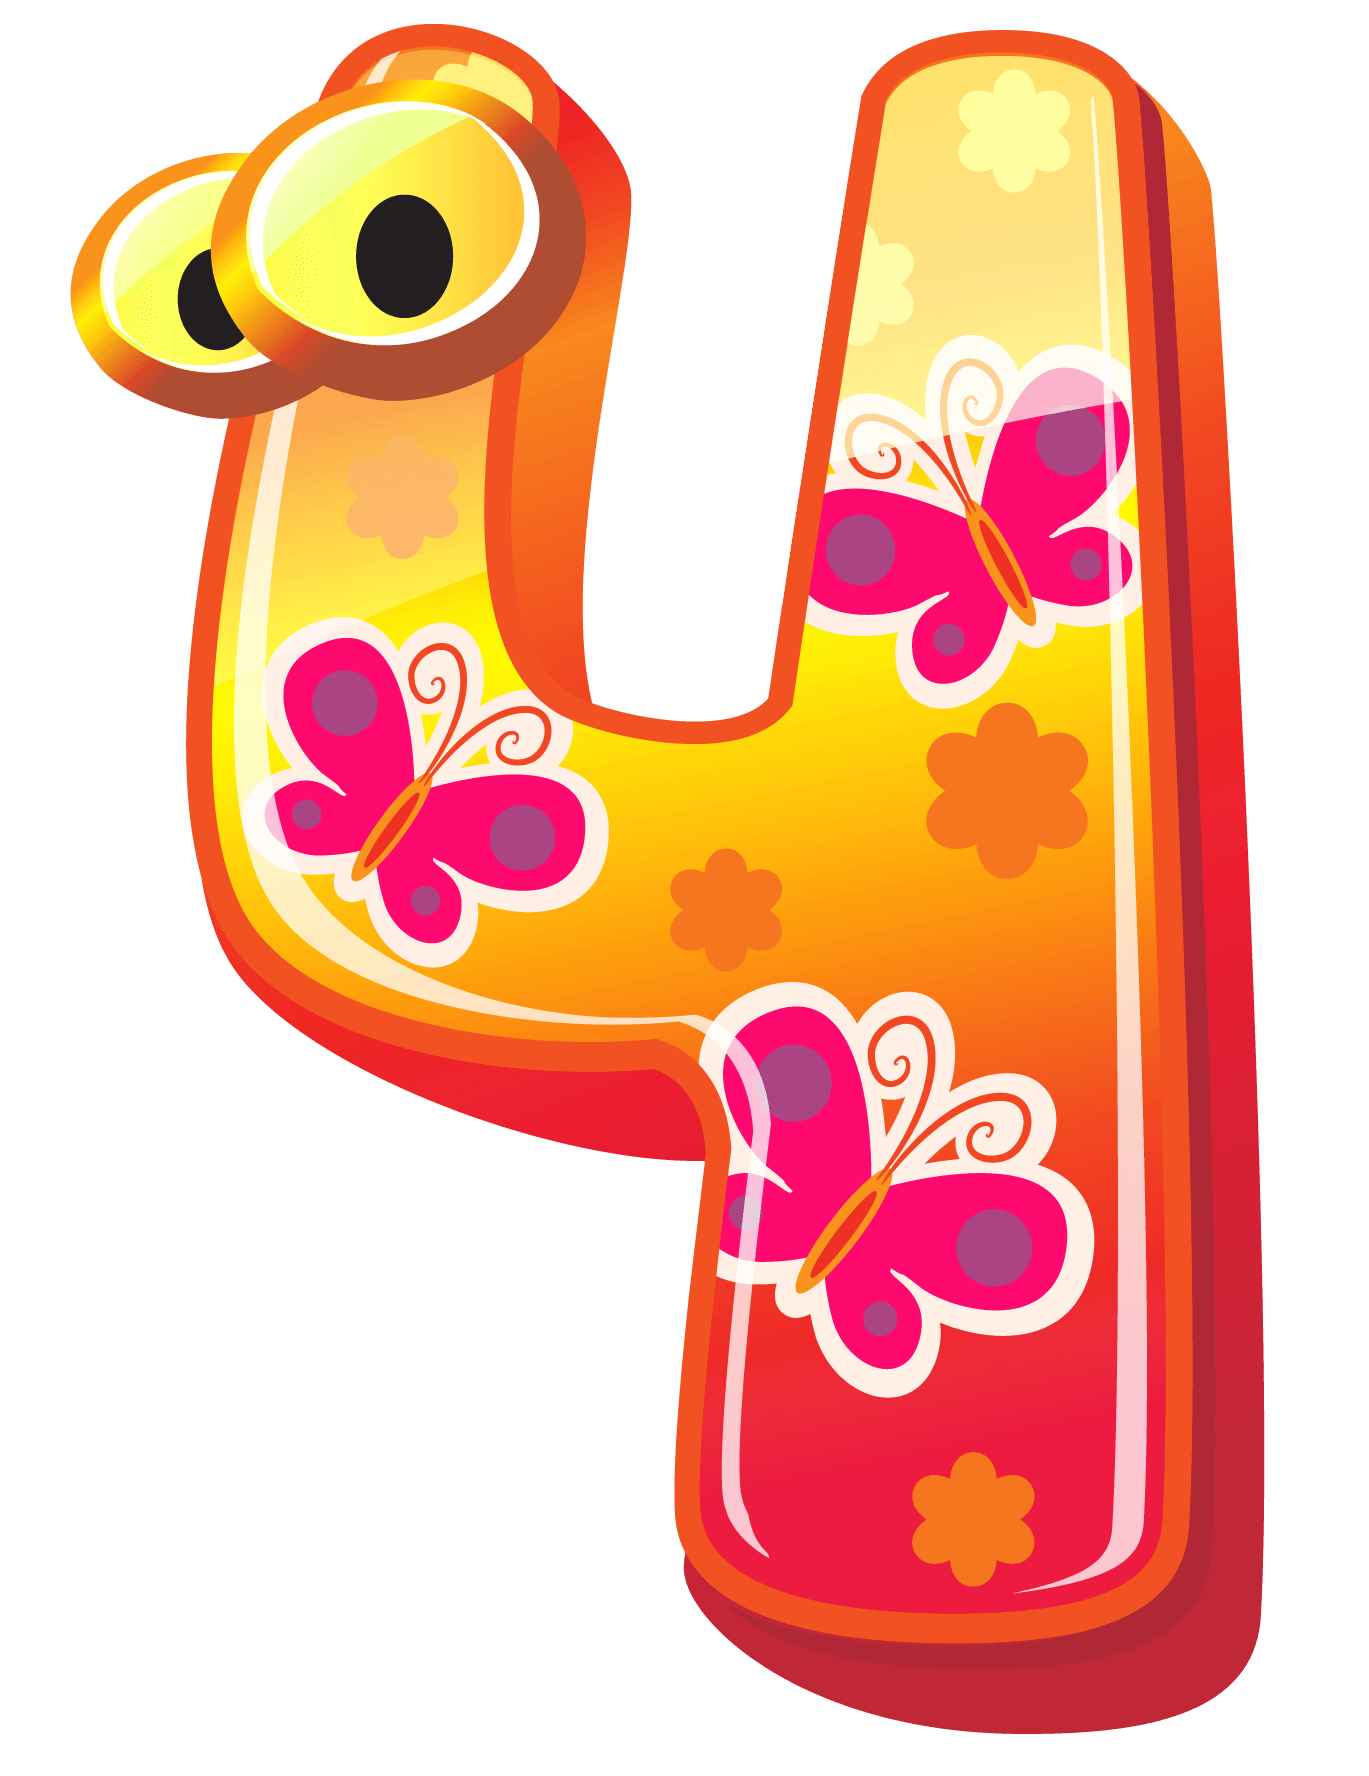 Free Cute Number 4 Cliparts, Download Free Clip Art, Free.